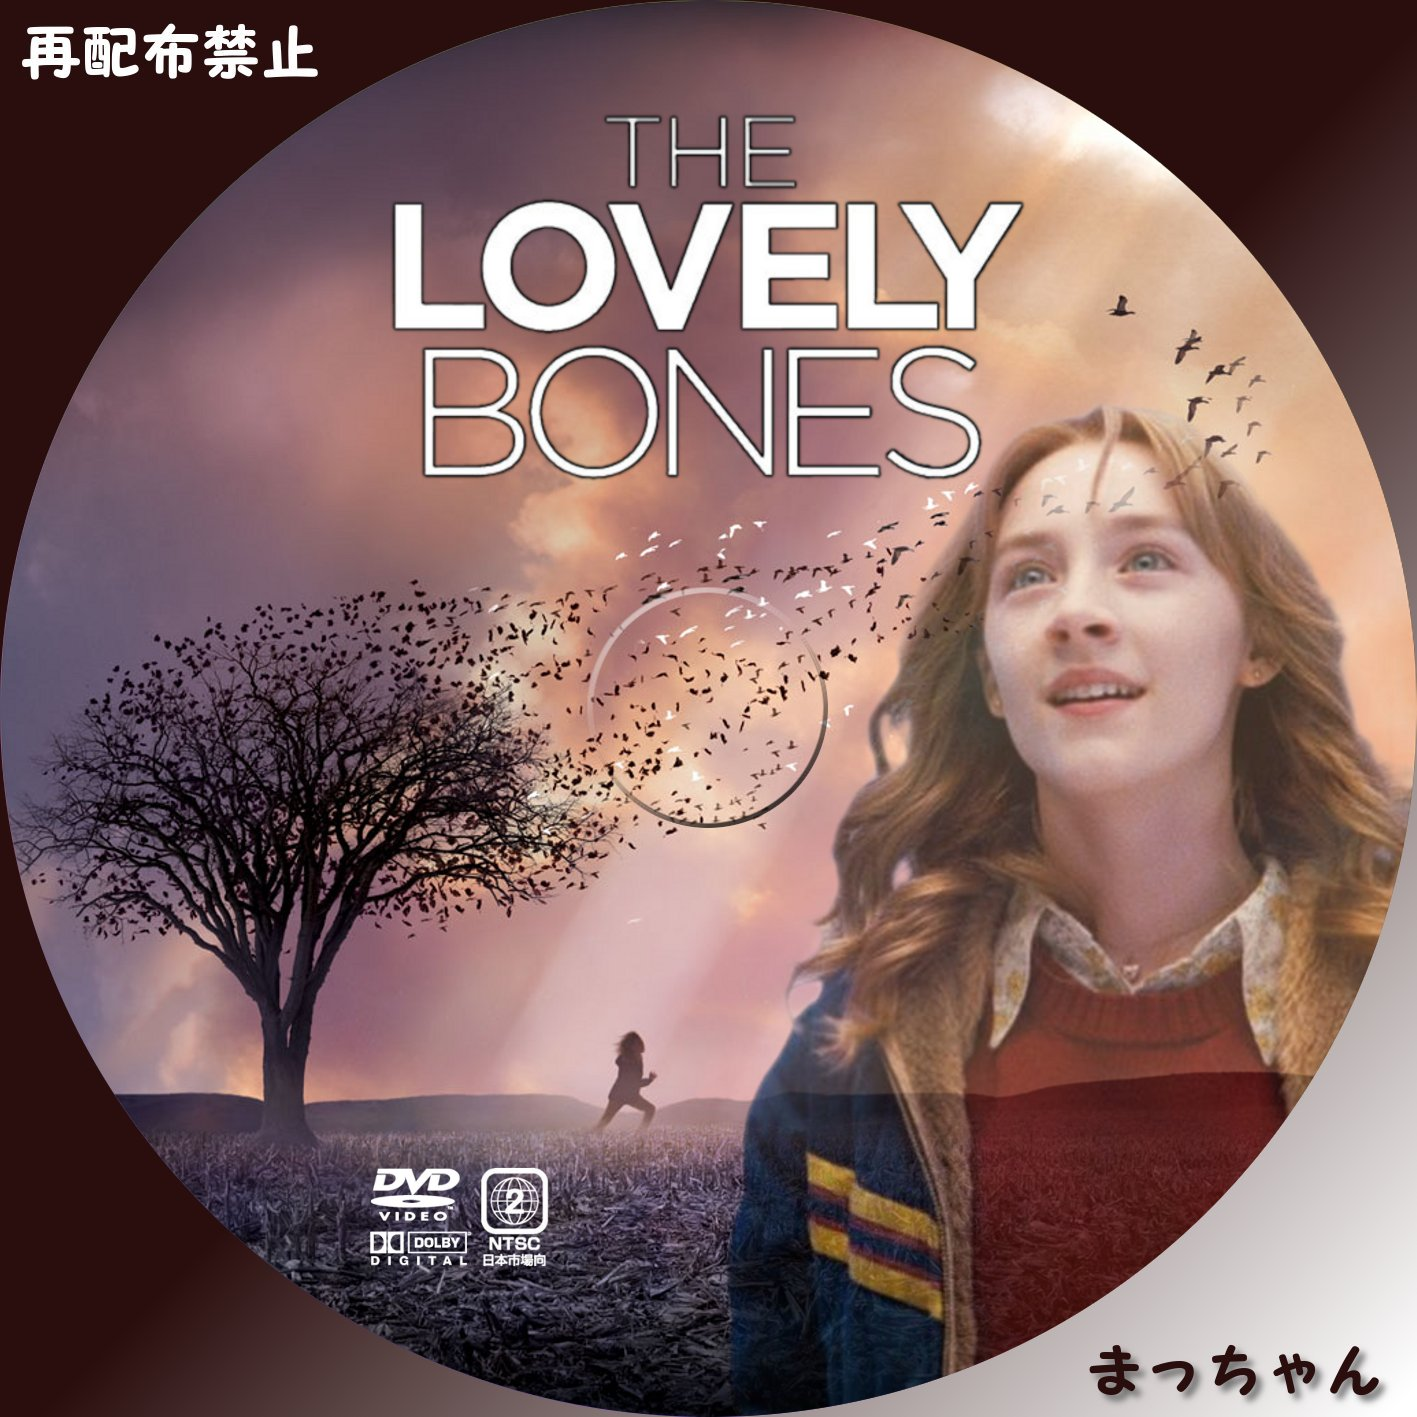 the lovely bones summary essay Blog comments powered by disqus the narrator of the lovely bones, susie salmon, is a normal fourteen year-old girl she has just received her first kiss and is looking forward to going to high school next year.